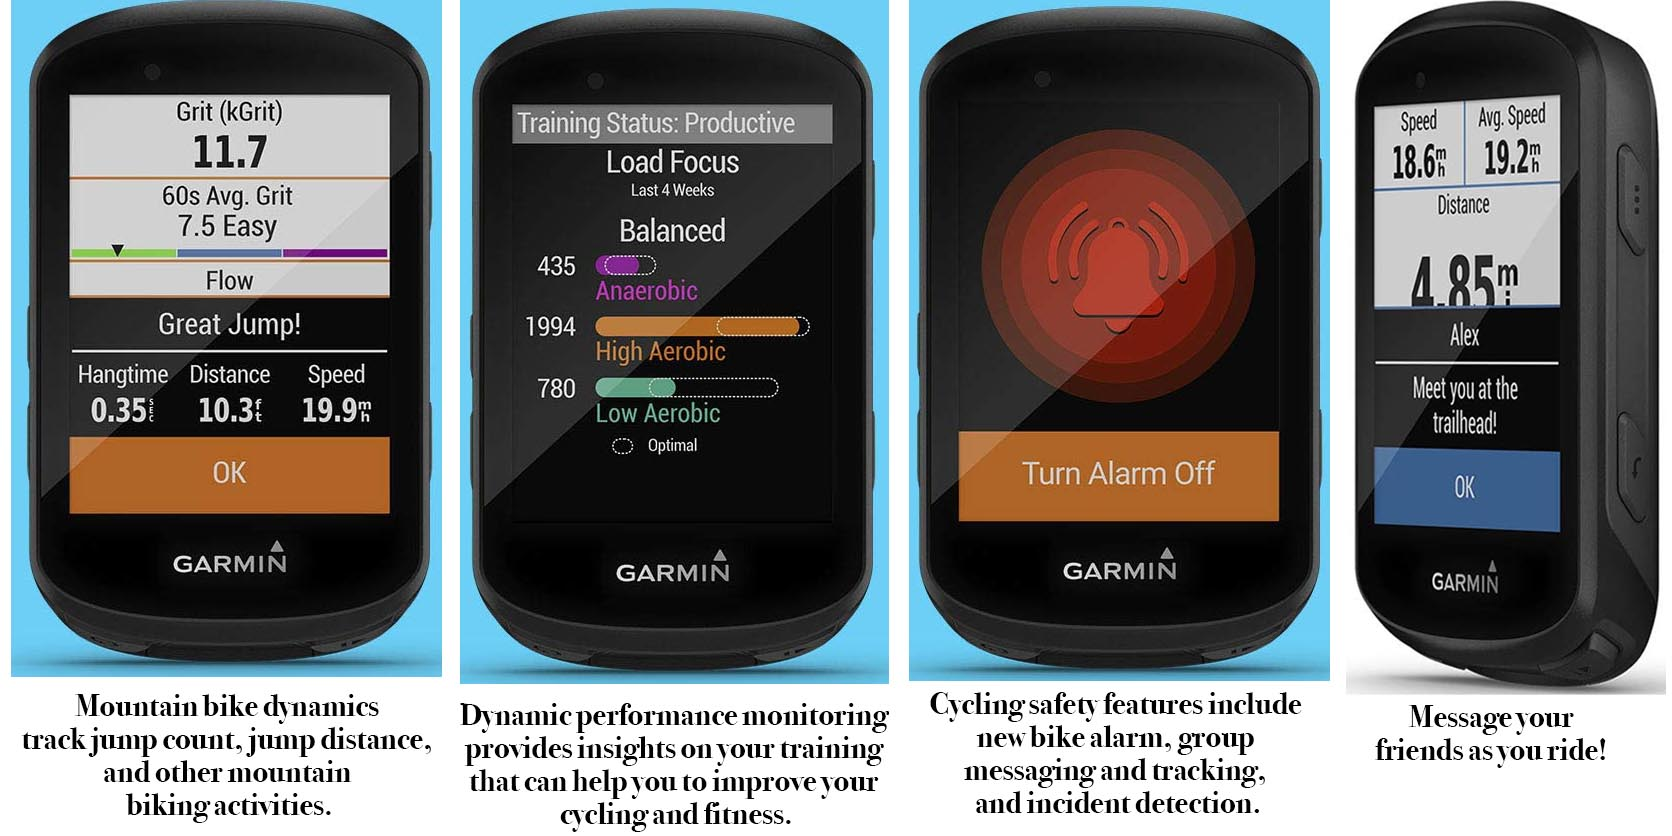 7 of the Best Fitness Trackers - Fitbit and Garmin. This graphic shows some of the many improvements to the Garmin Edge 530